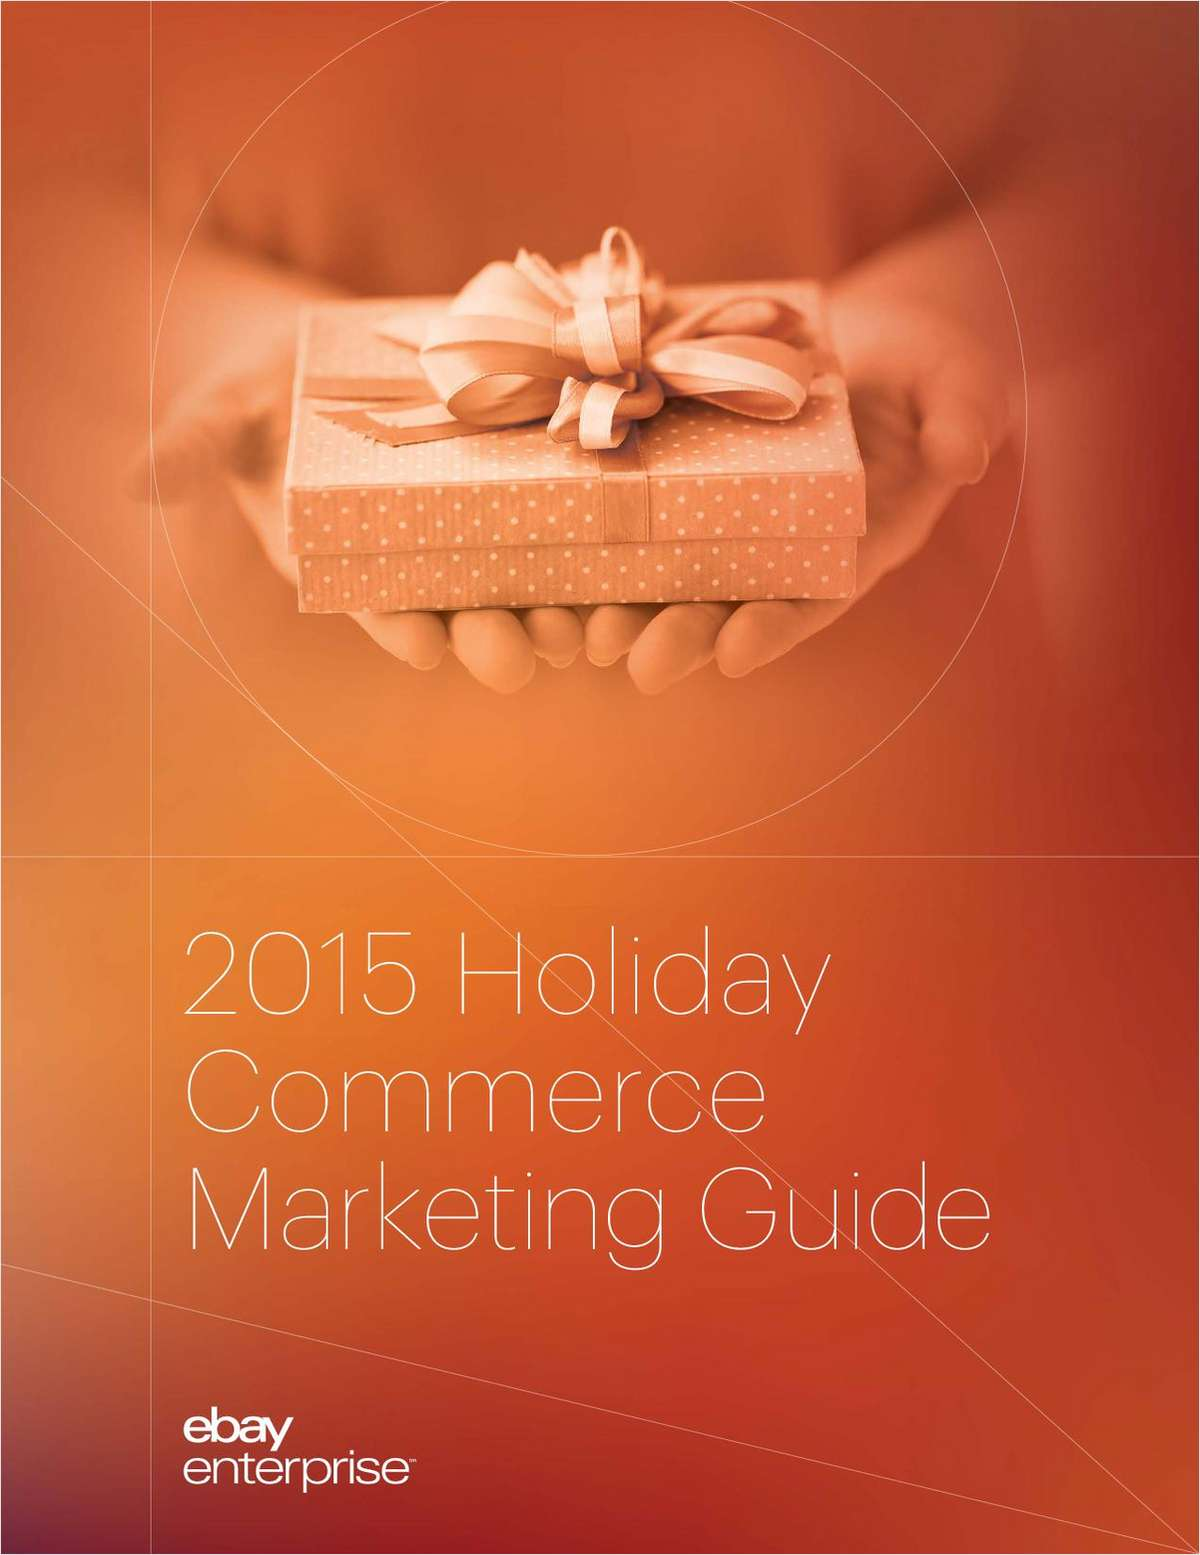 2015 Holiday Commerce Marketing Guide